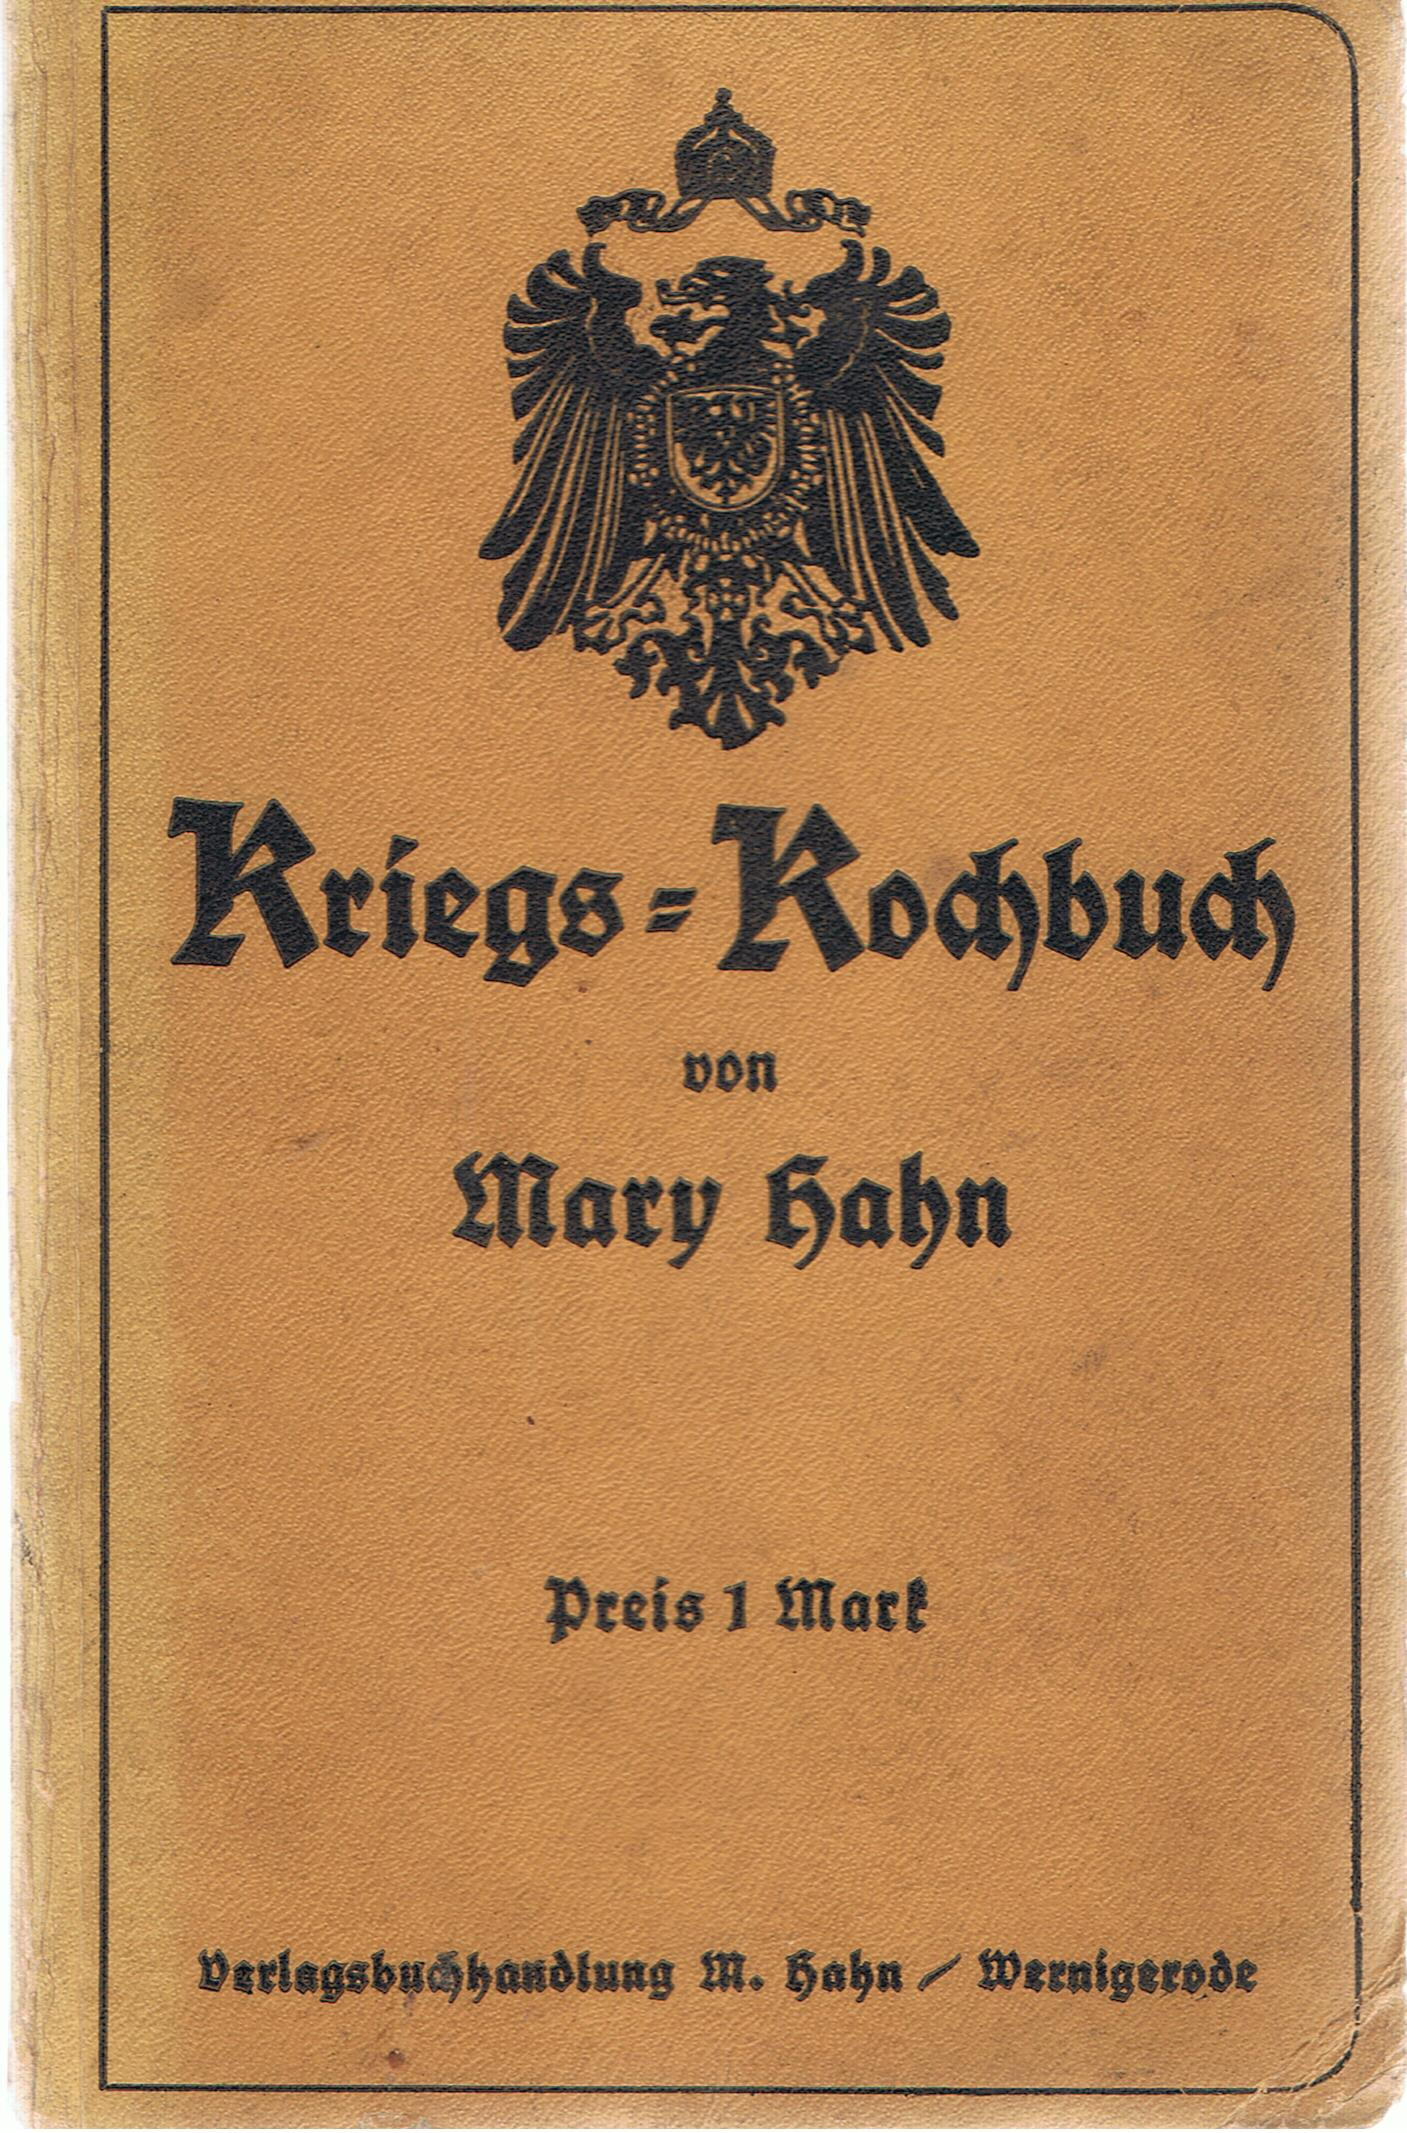 Image for Kriegs-Kochbuch